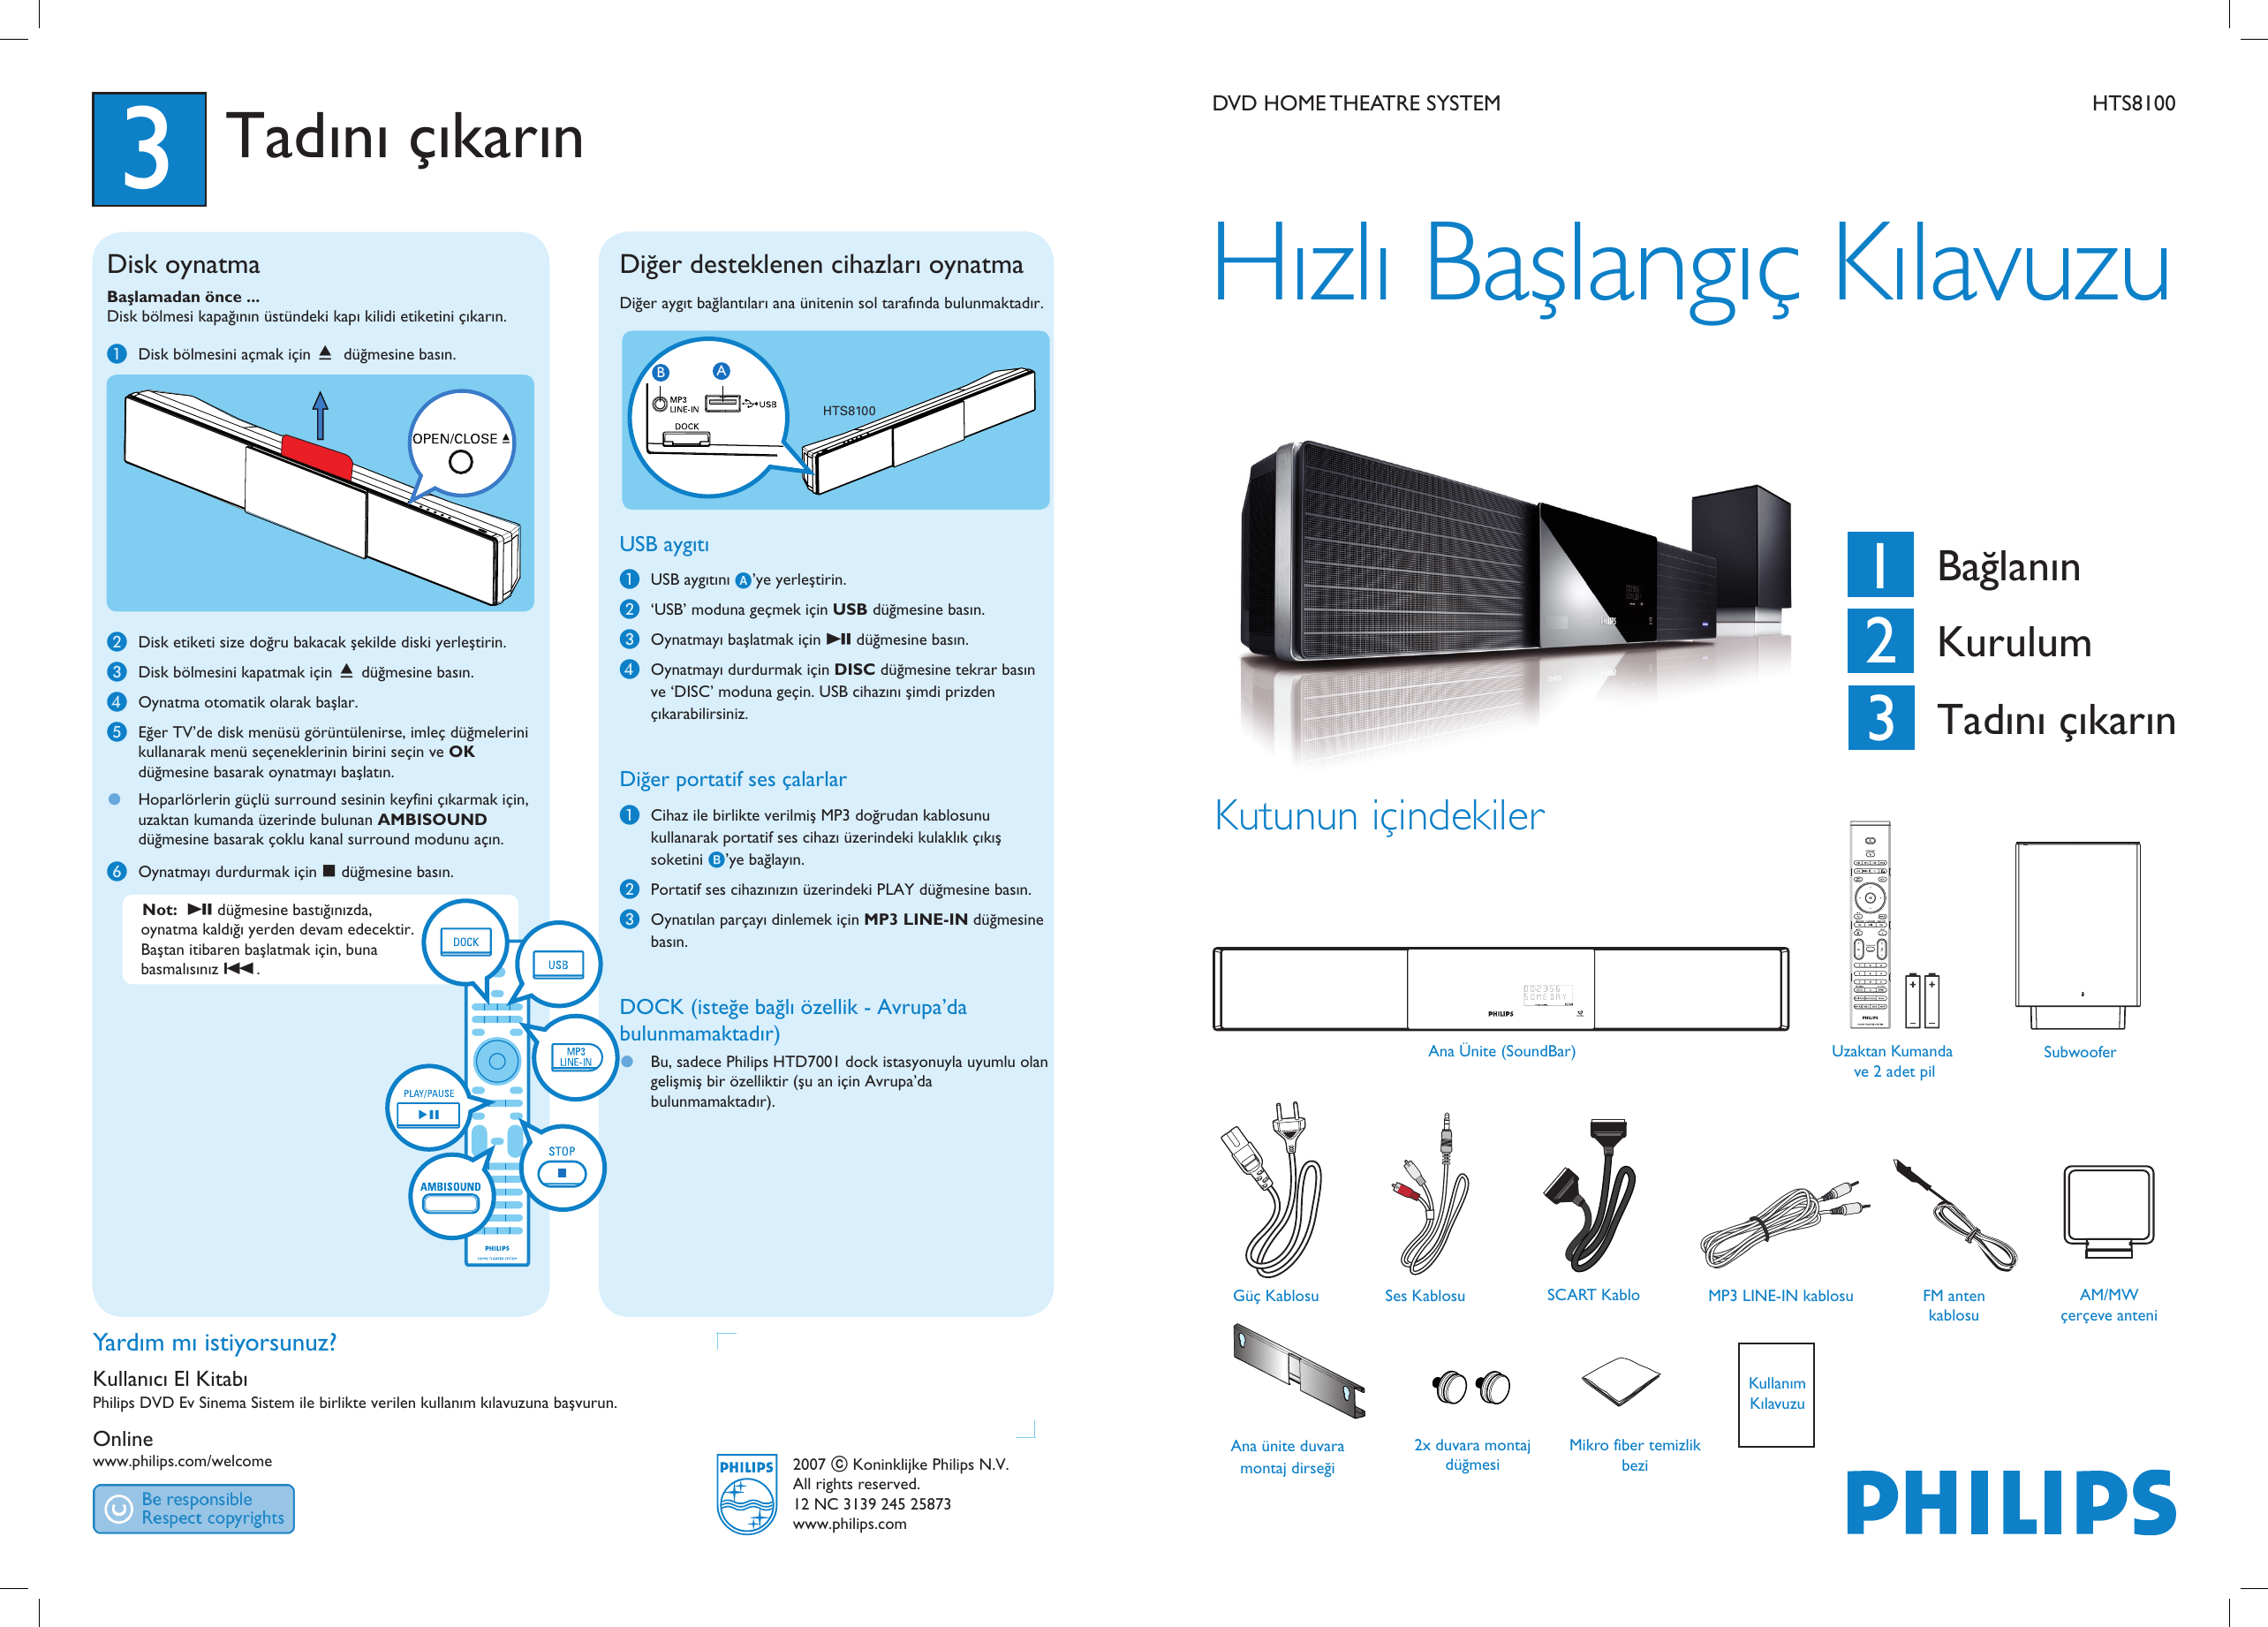 philips hts8100 12 hts8100 euqsg tur 25873 user manual pikaopas rh usermanual wiki Philips Soundbar CSS2123 Philips Soundbar DVD